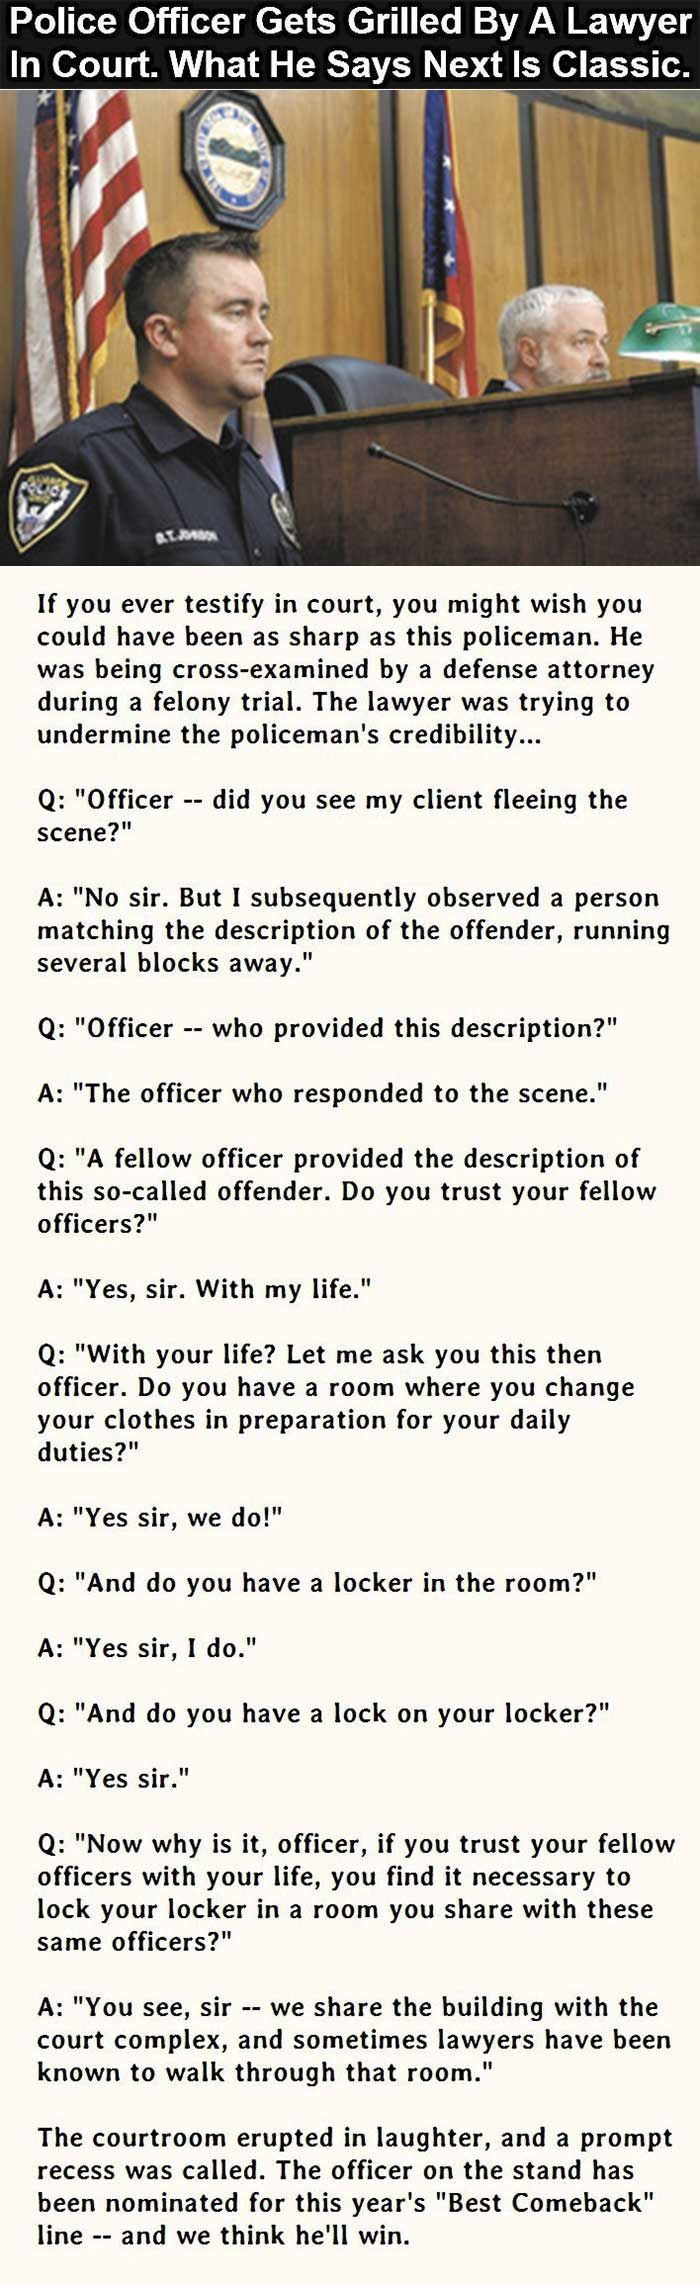 Police Officer Vs Lawyer